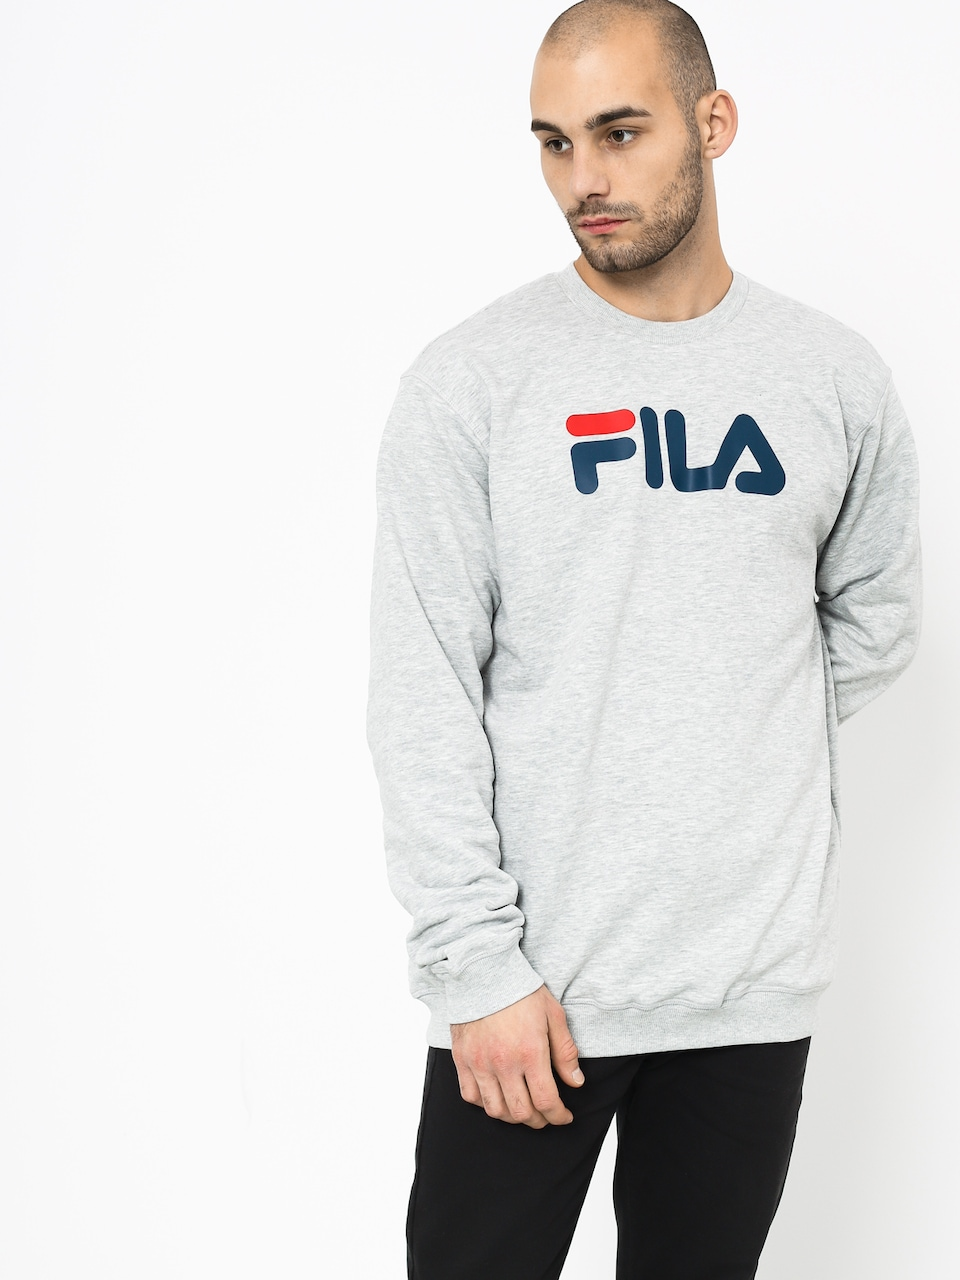 Fila: sneakersy, bluzy, t shirty | SUPERSKLEP